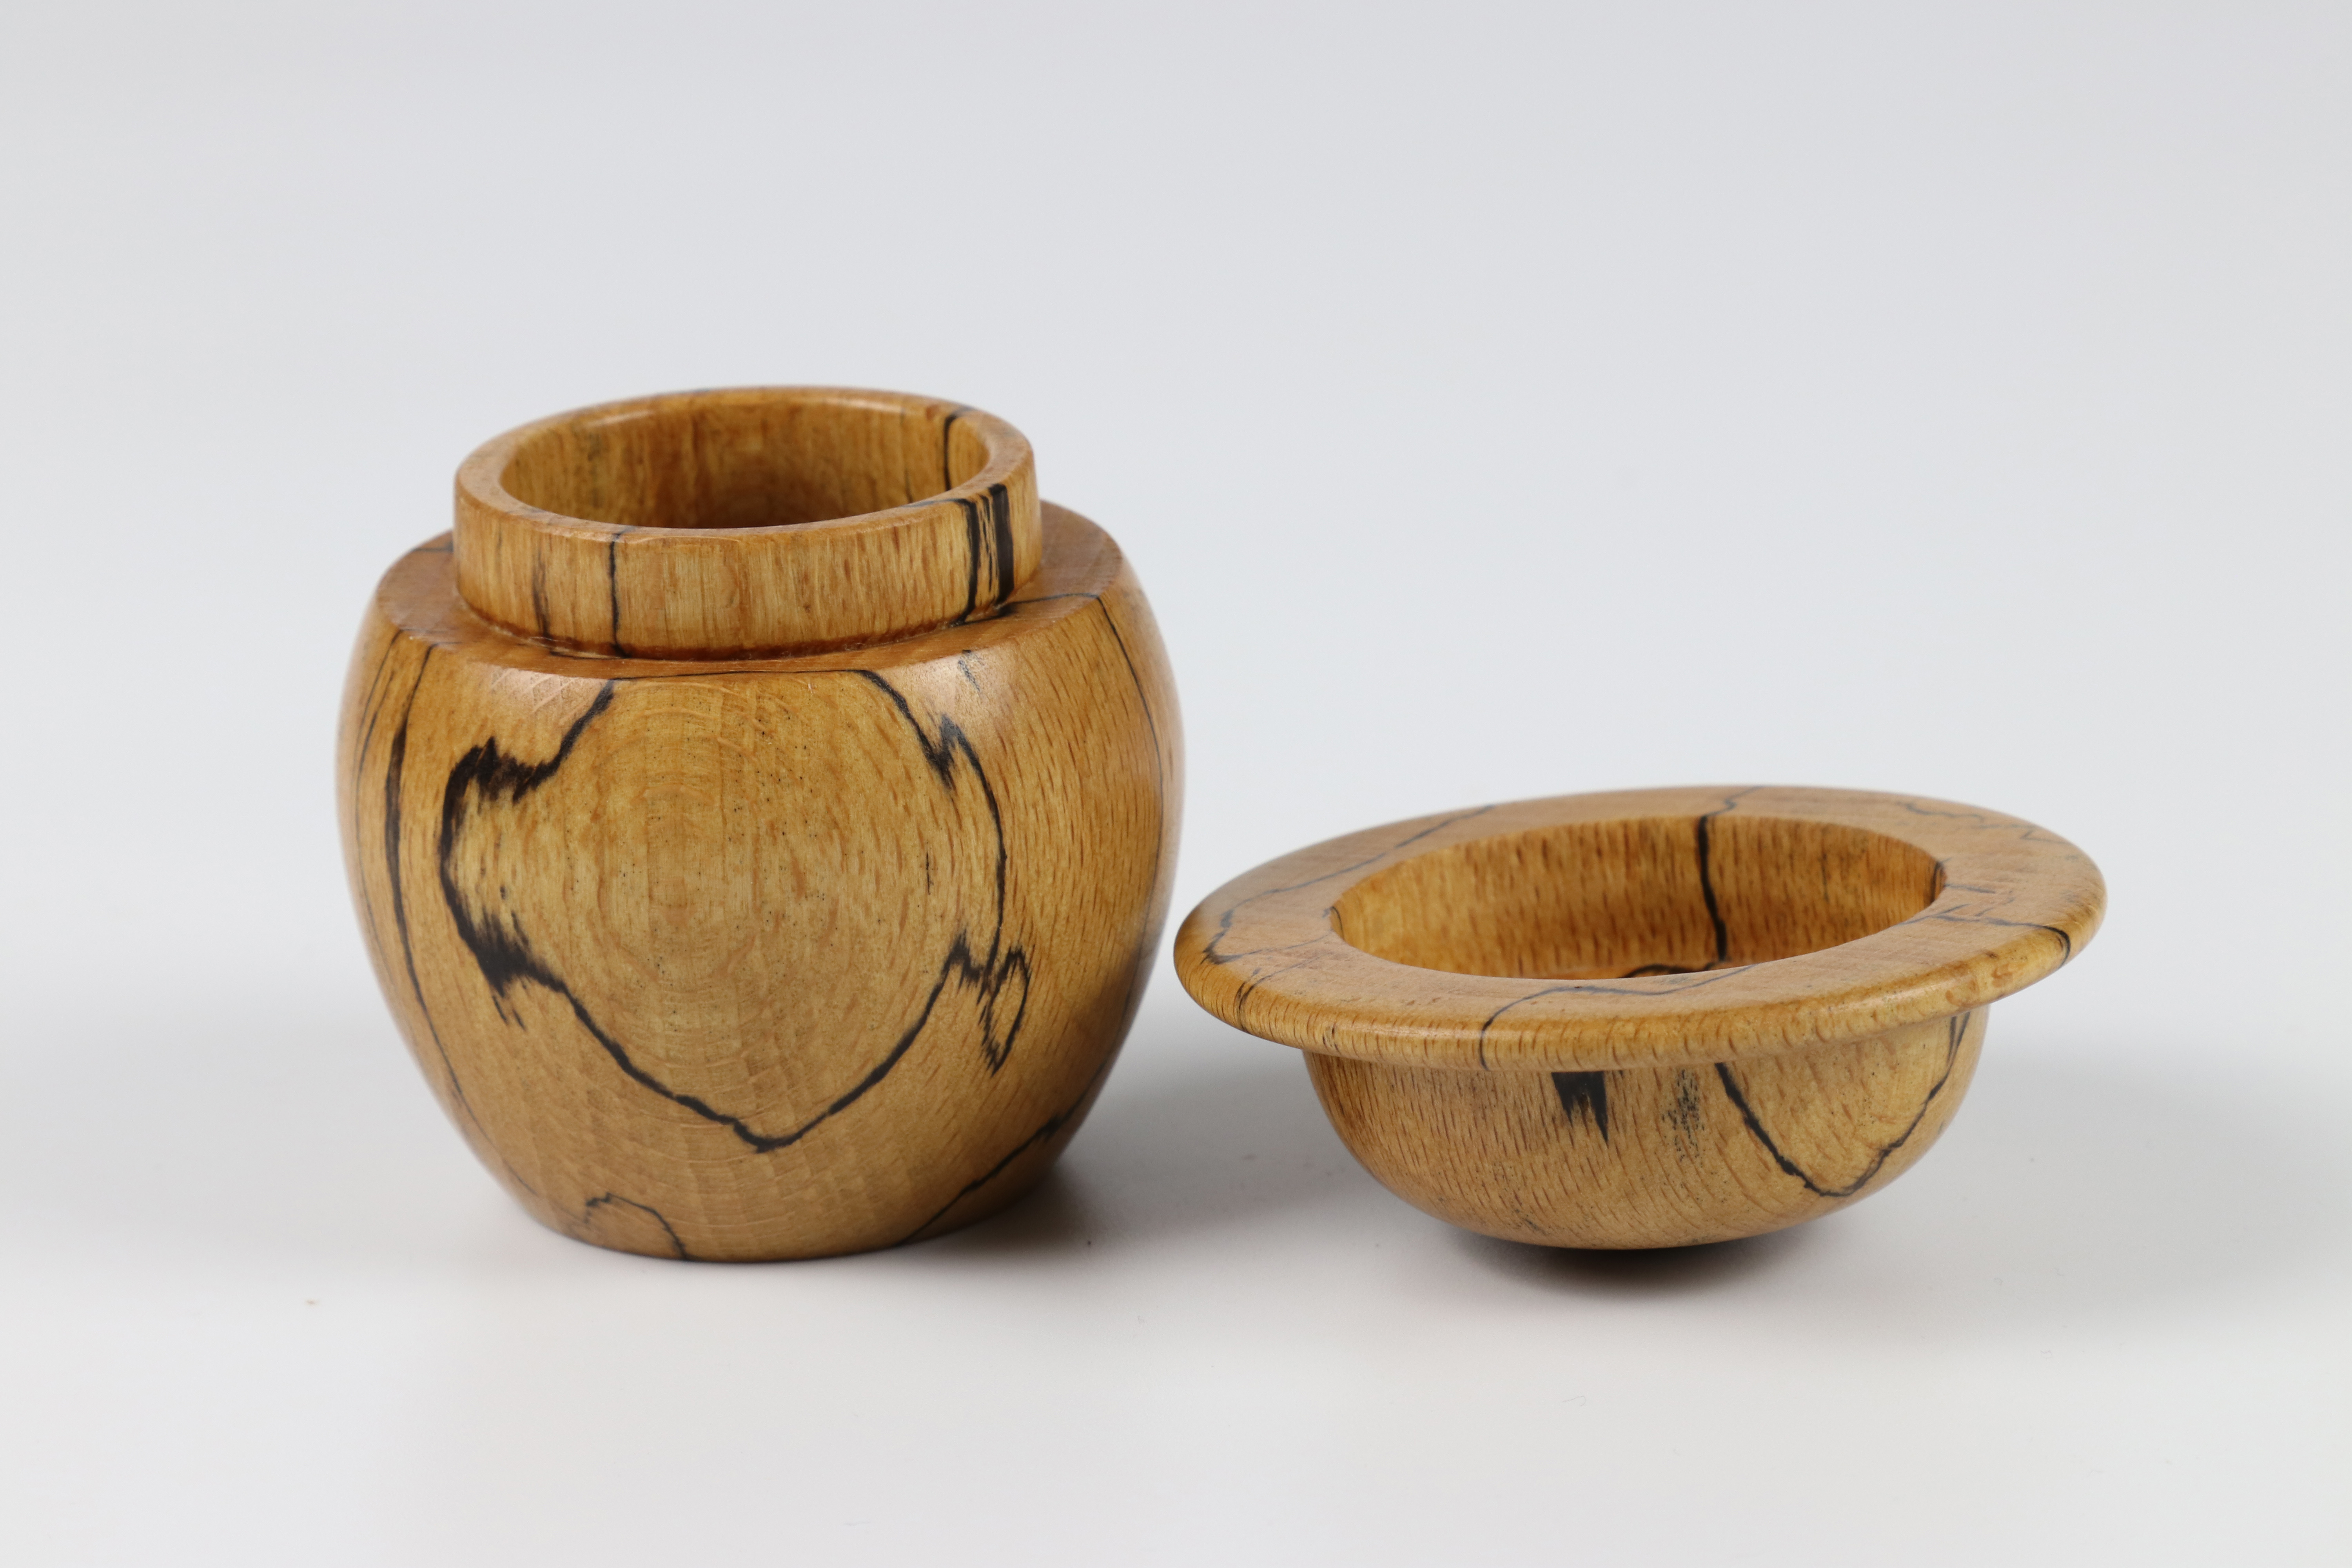 Lot 72 - Mary Lacer (USA) spalted beech box 7x6cm. Signed